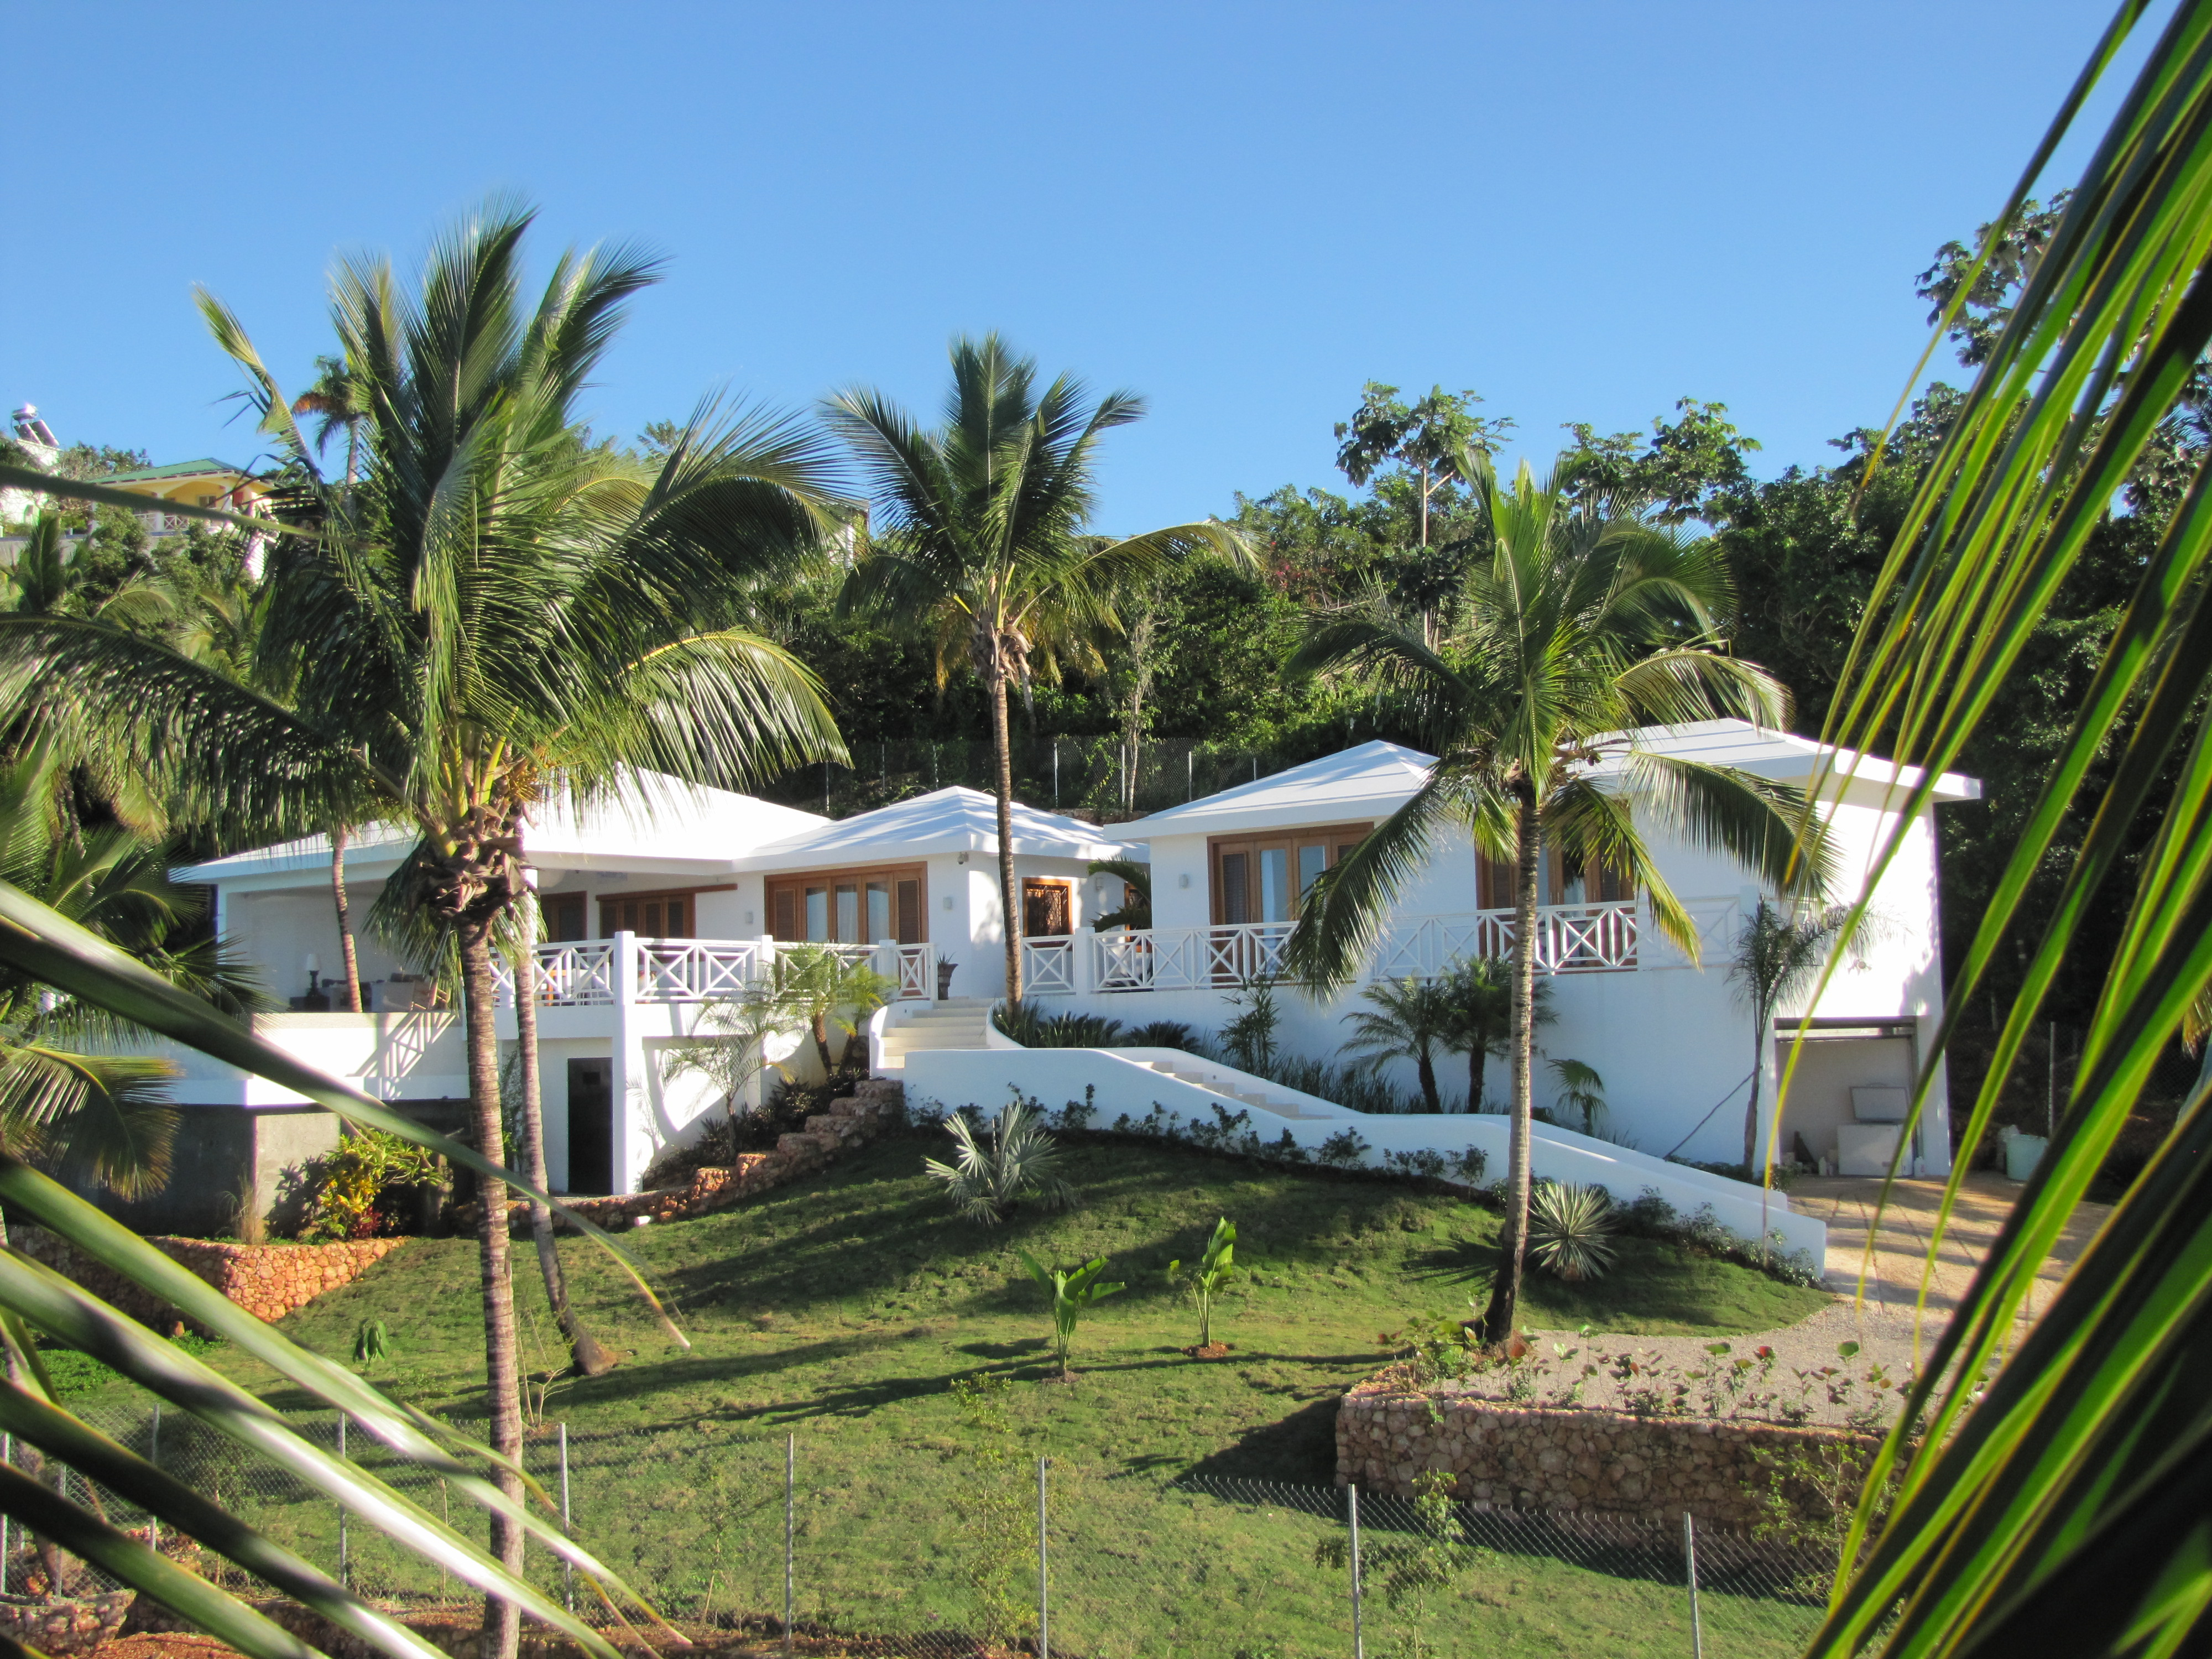 REDUCED : 4 BED TRANQUIL & PRIVATE VILLA WITH OCEAN VIEWS $620,000 USD